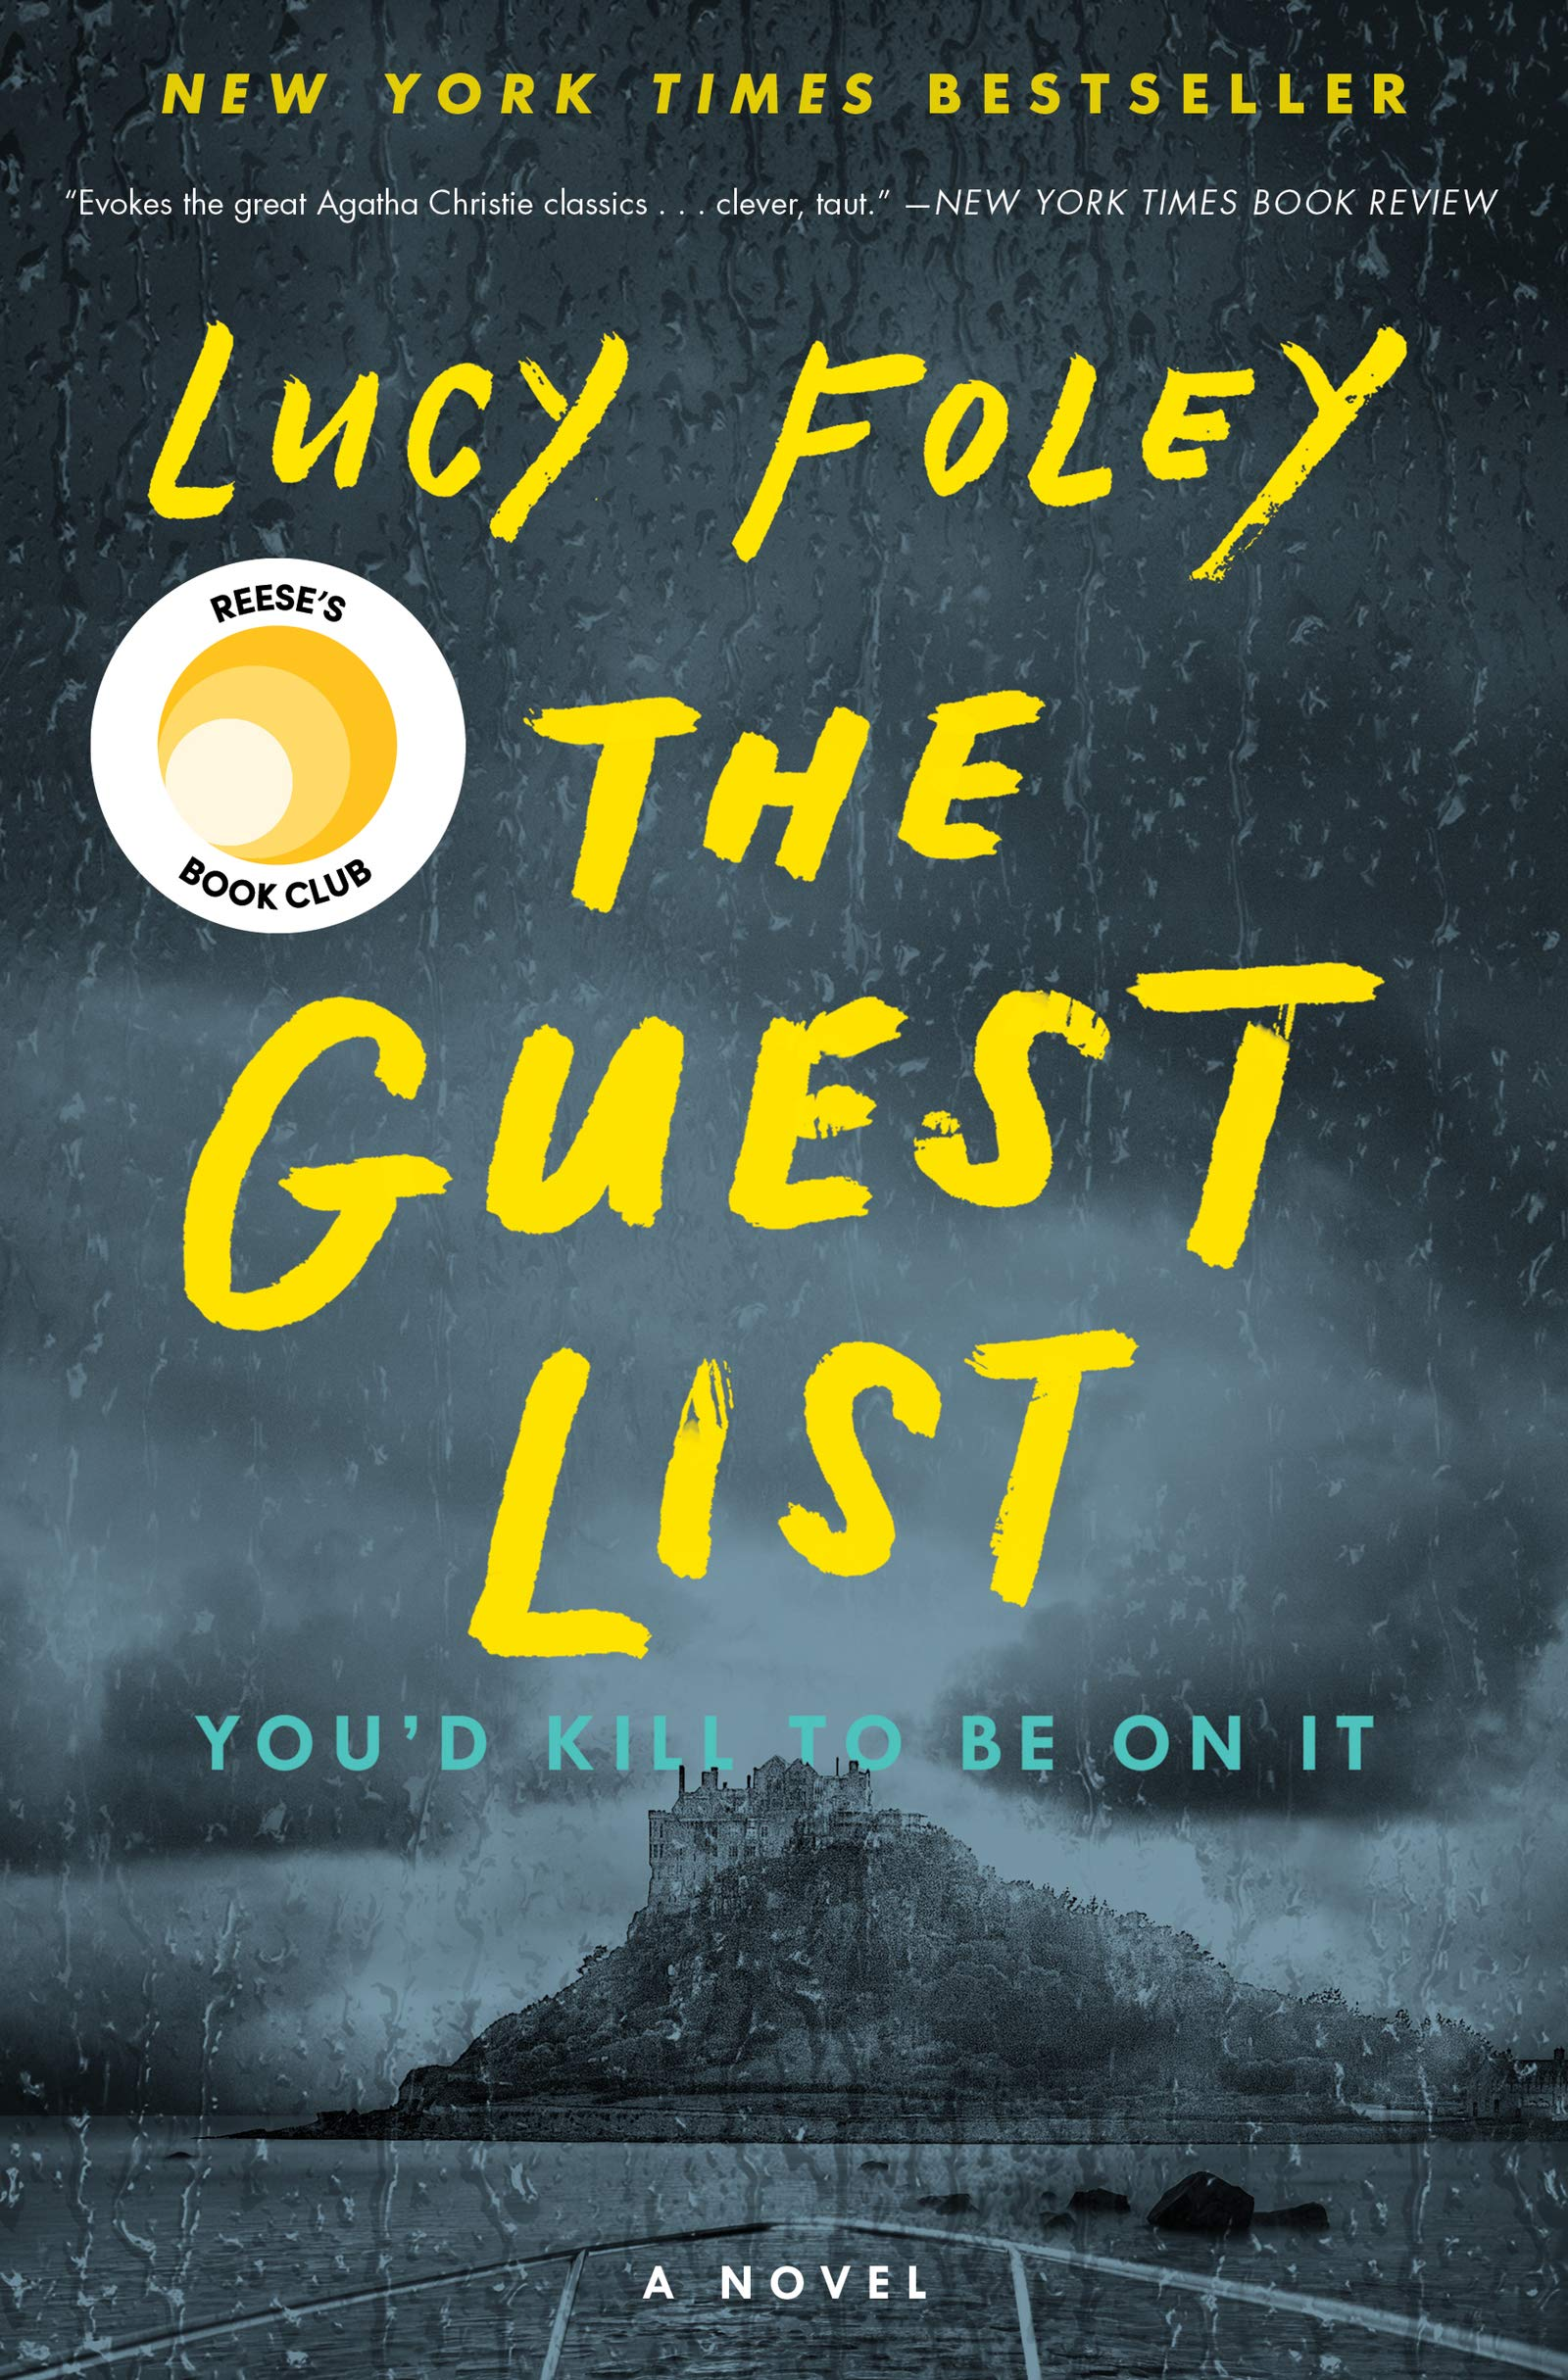 Amazon.com: The Guest List: A Novel (9780062868930): Foley, Lucy: Books